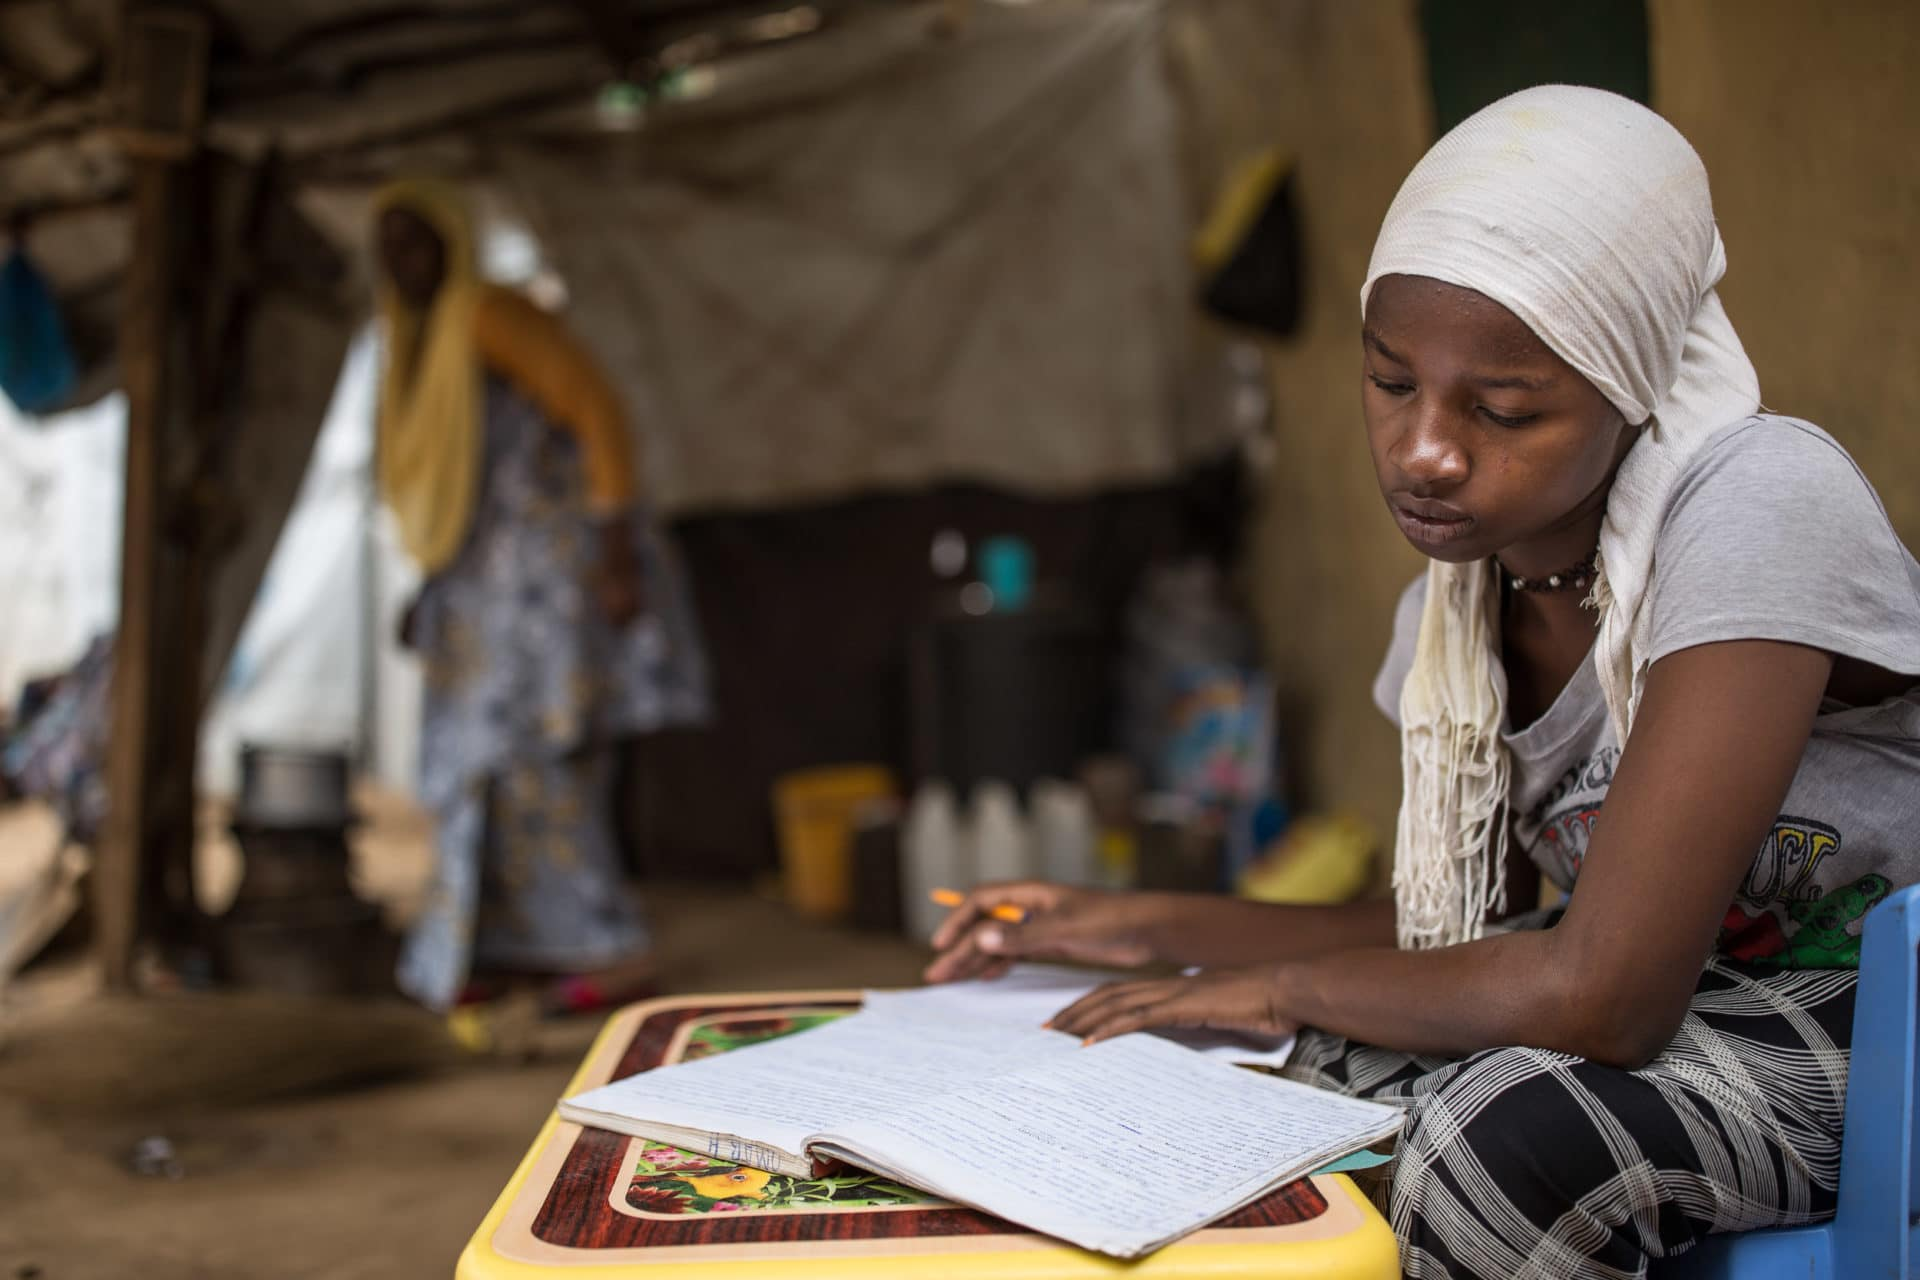 A young refugee studies at her home.